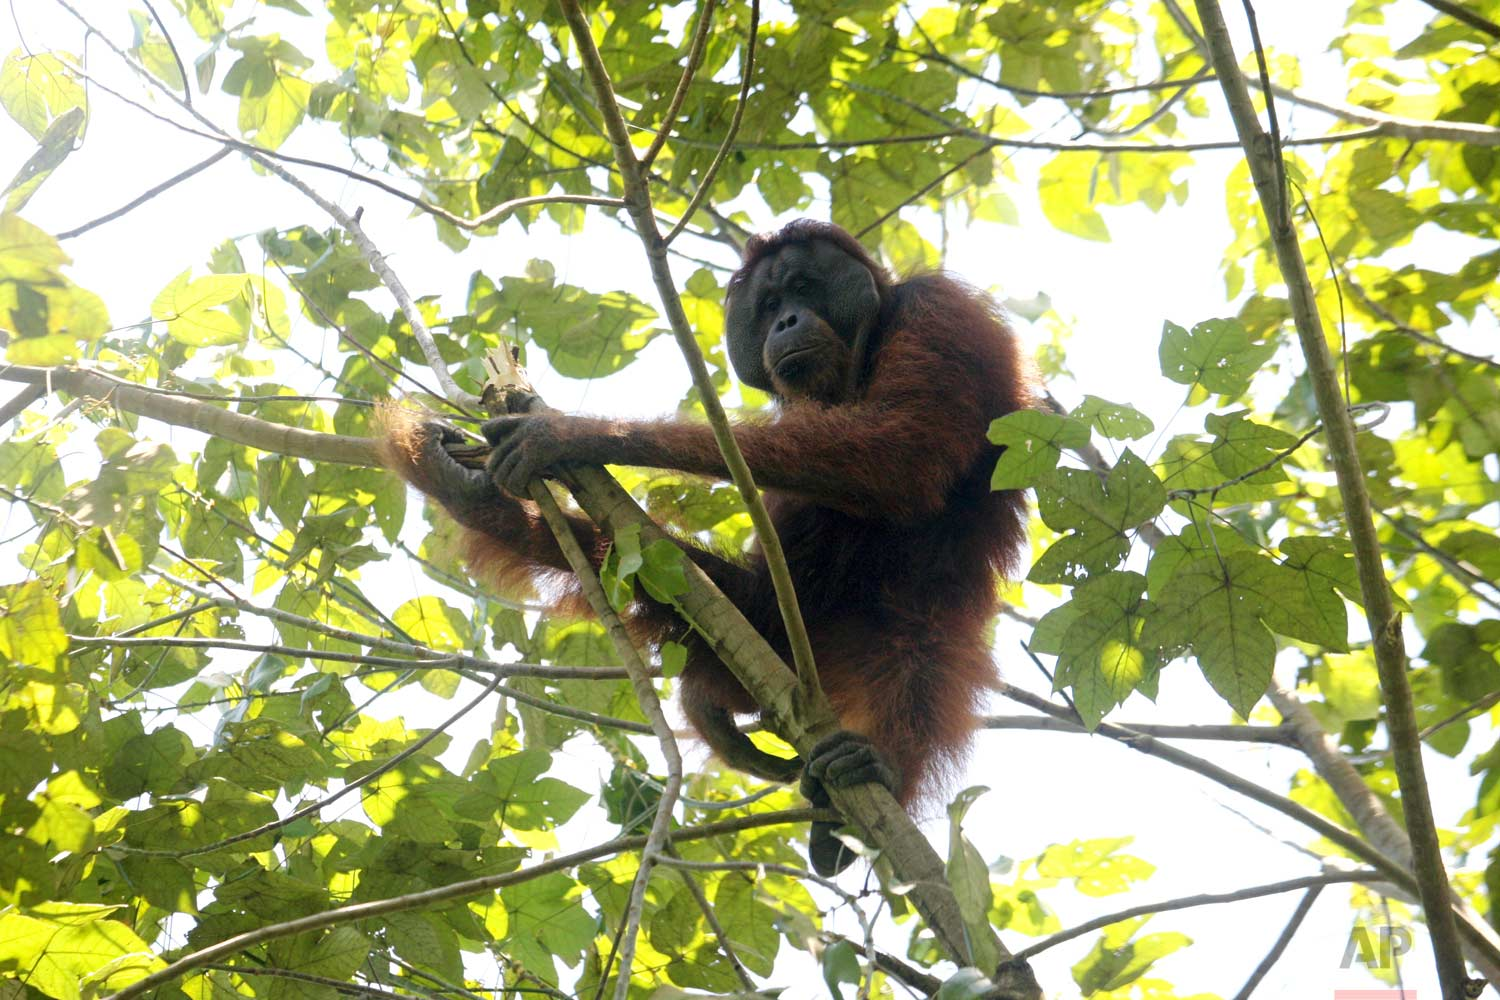 In this Thursday, Aug. 10, 2017 photo, an orangutan sits on the branch of a tree before being rescued and relocated from a swath of forest near a palm oil plantation at Tripa peat swamp in Aceh province, Indonesia. (AP Photo/Binsar Bakkara)